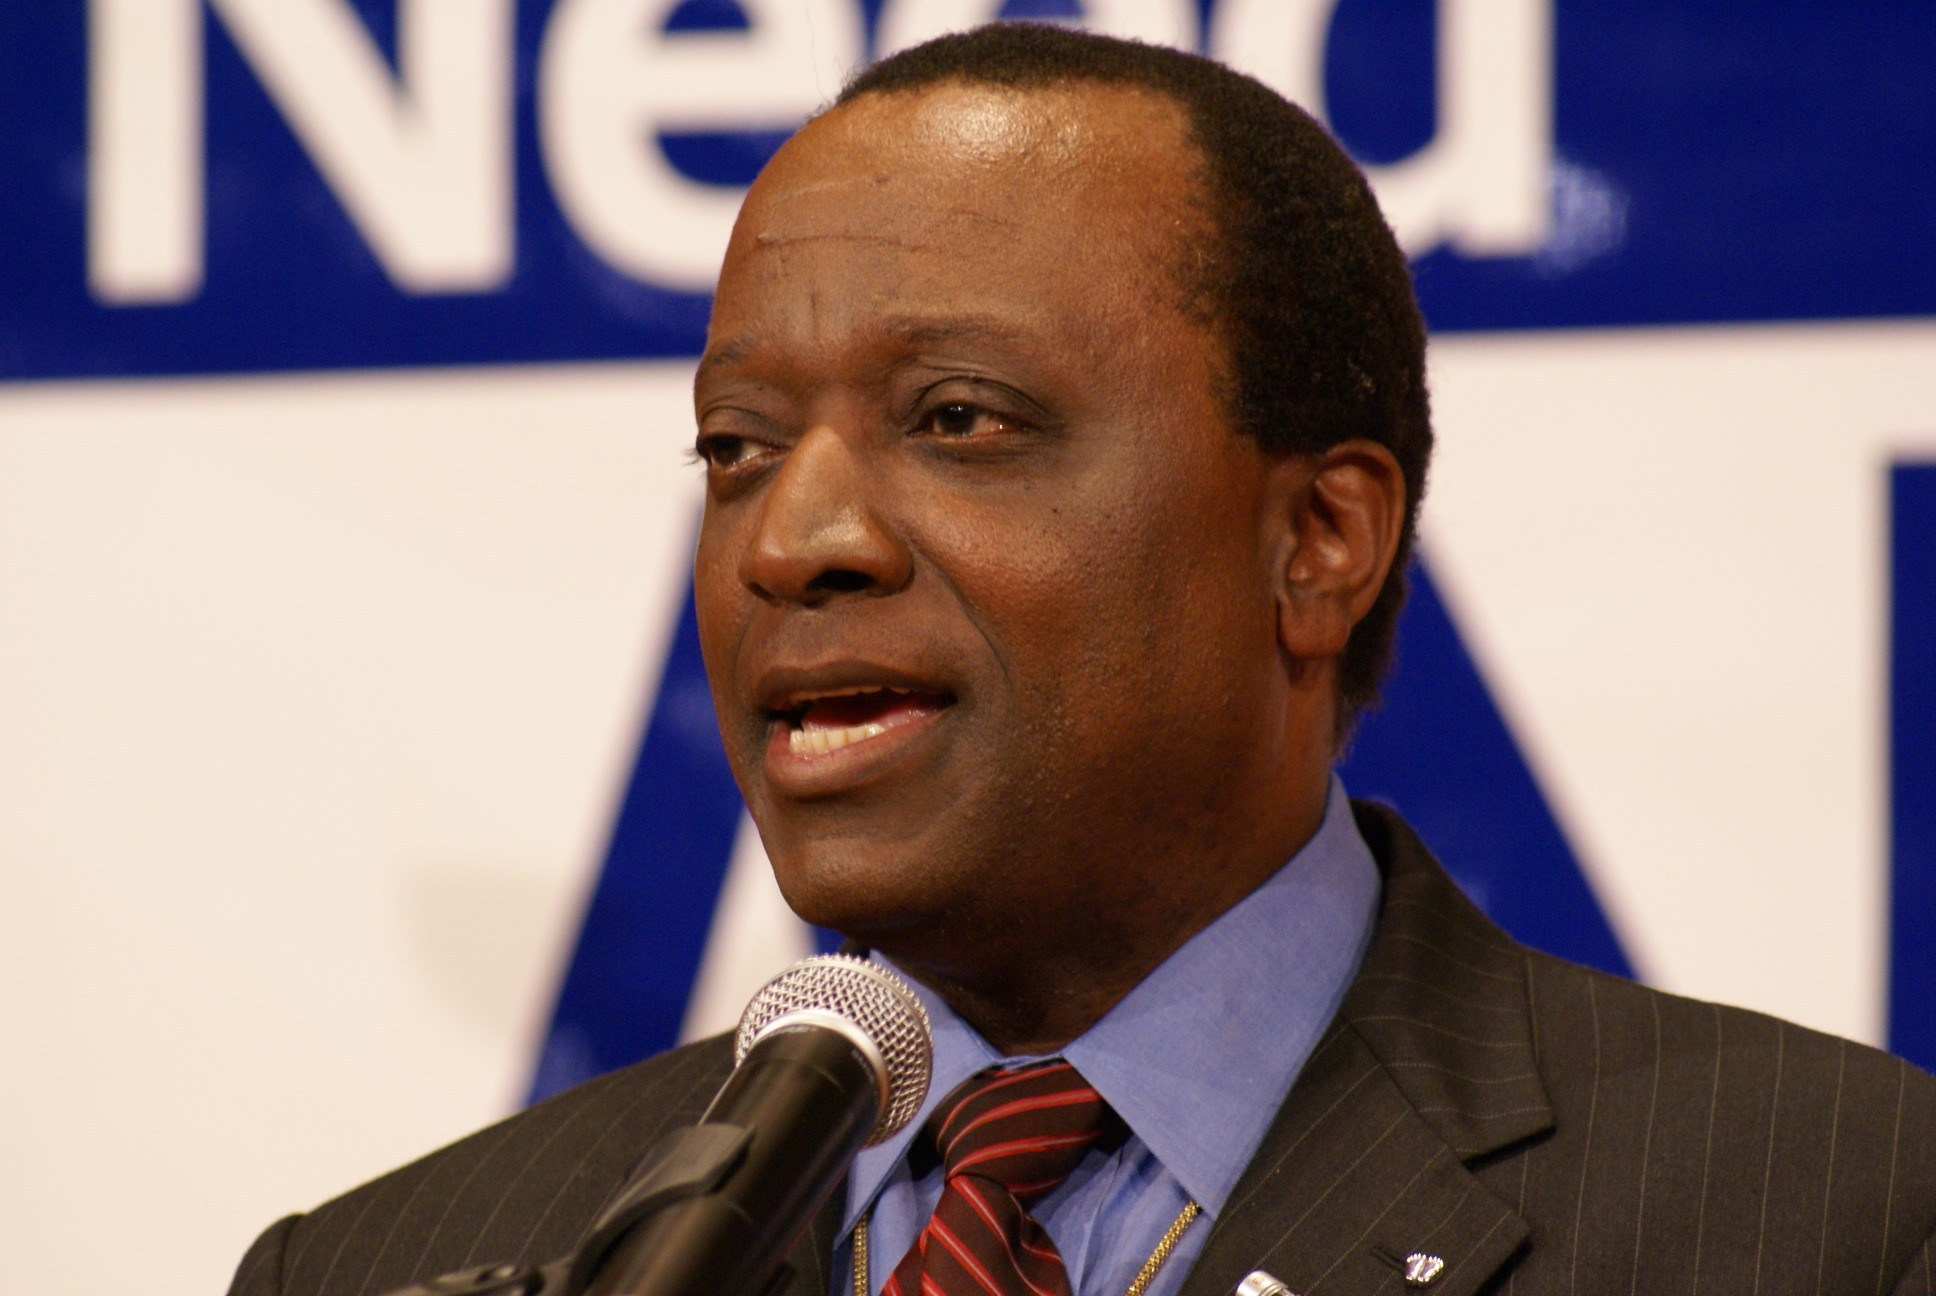 Alan Keyes Biography, Age, Weight, Height, Friend, Like, Affairs, Favourite, Birthdate & Other